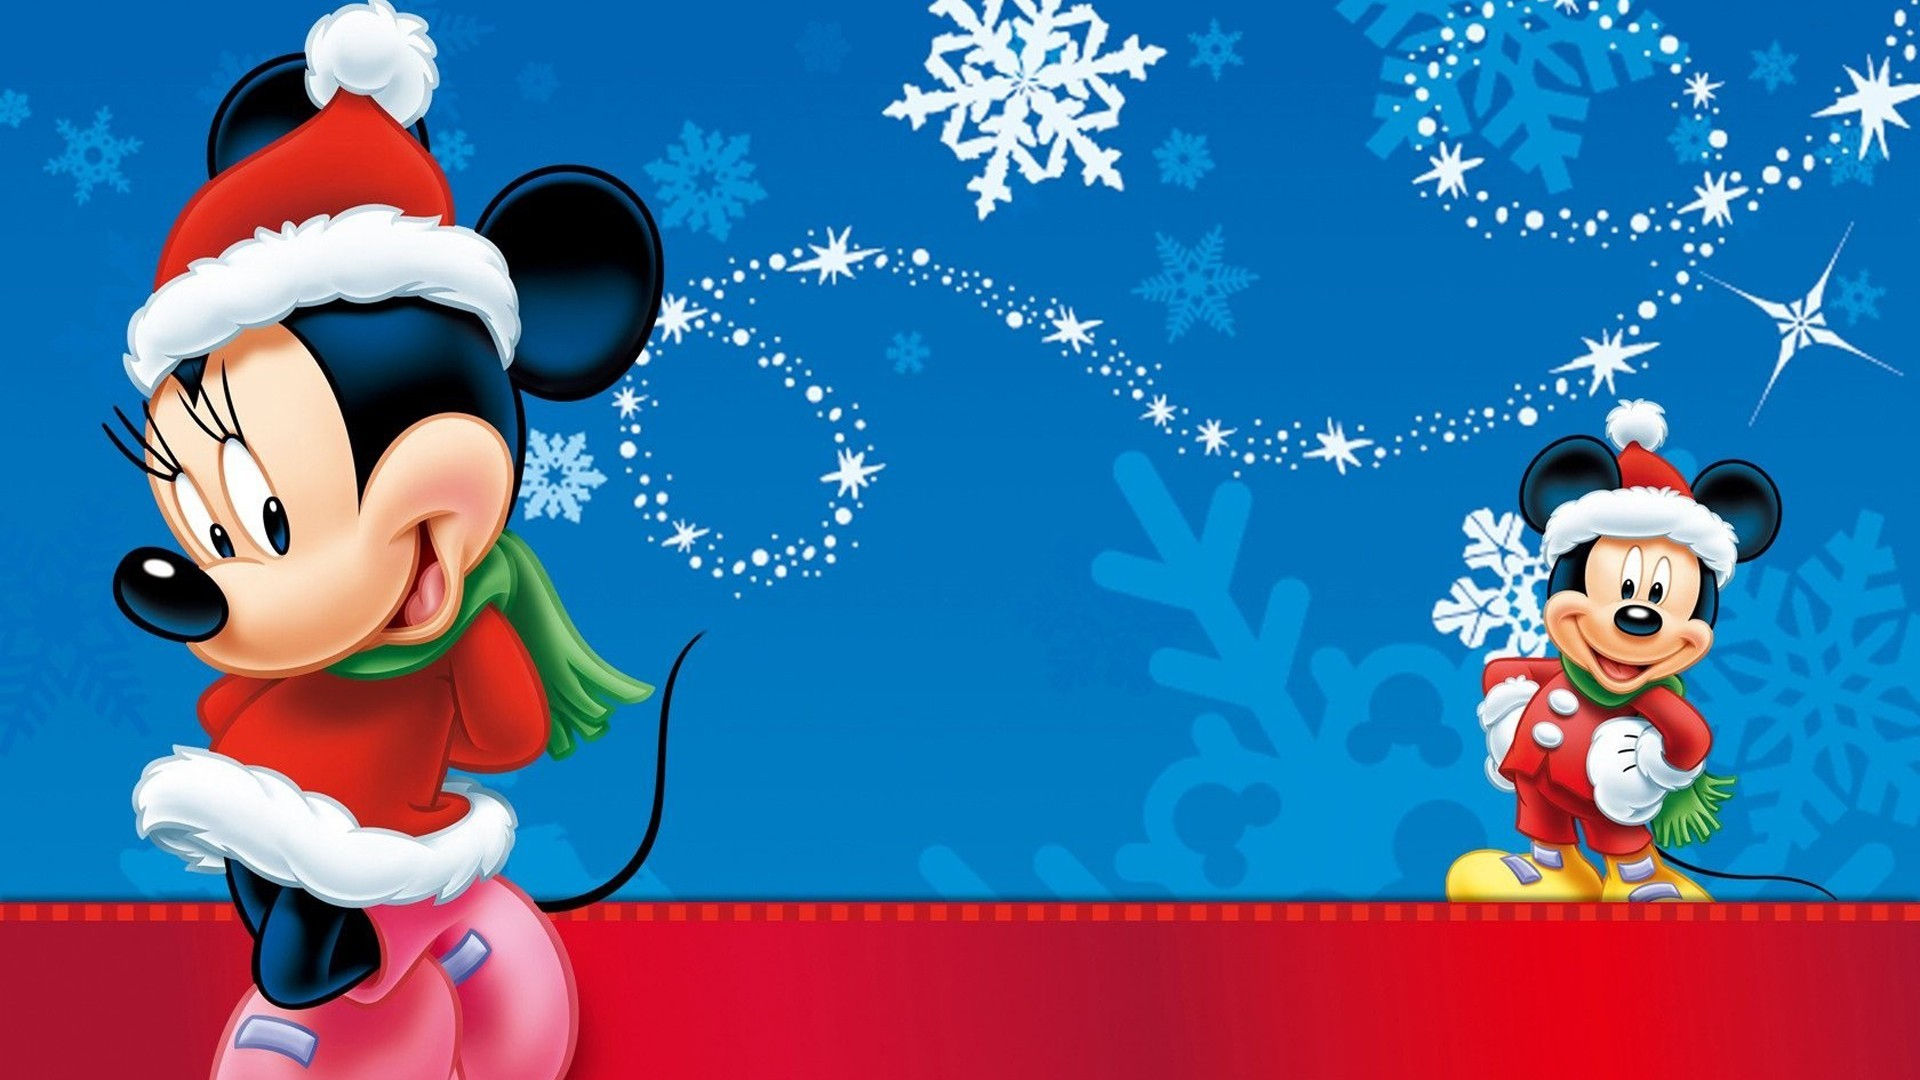 1920x1080 Minnie And Mickey Mouse Christmas Wallpaper Hd : Wallpapers13.com